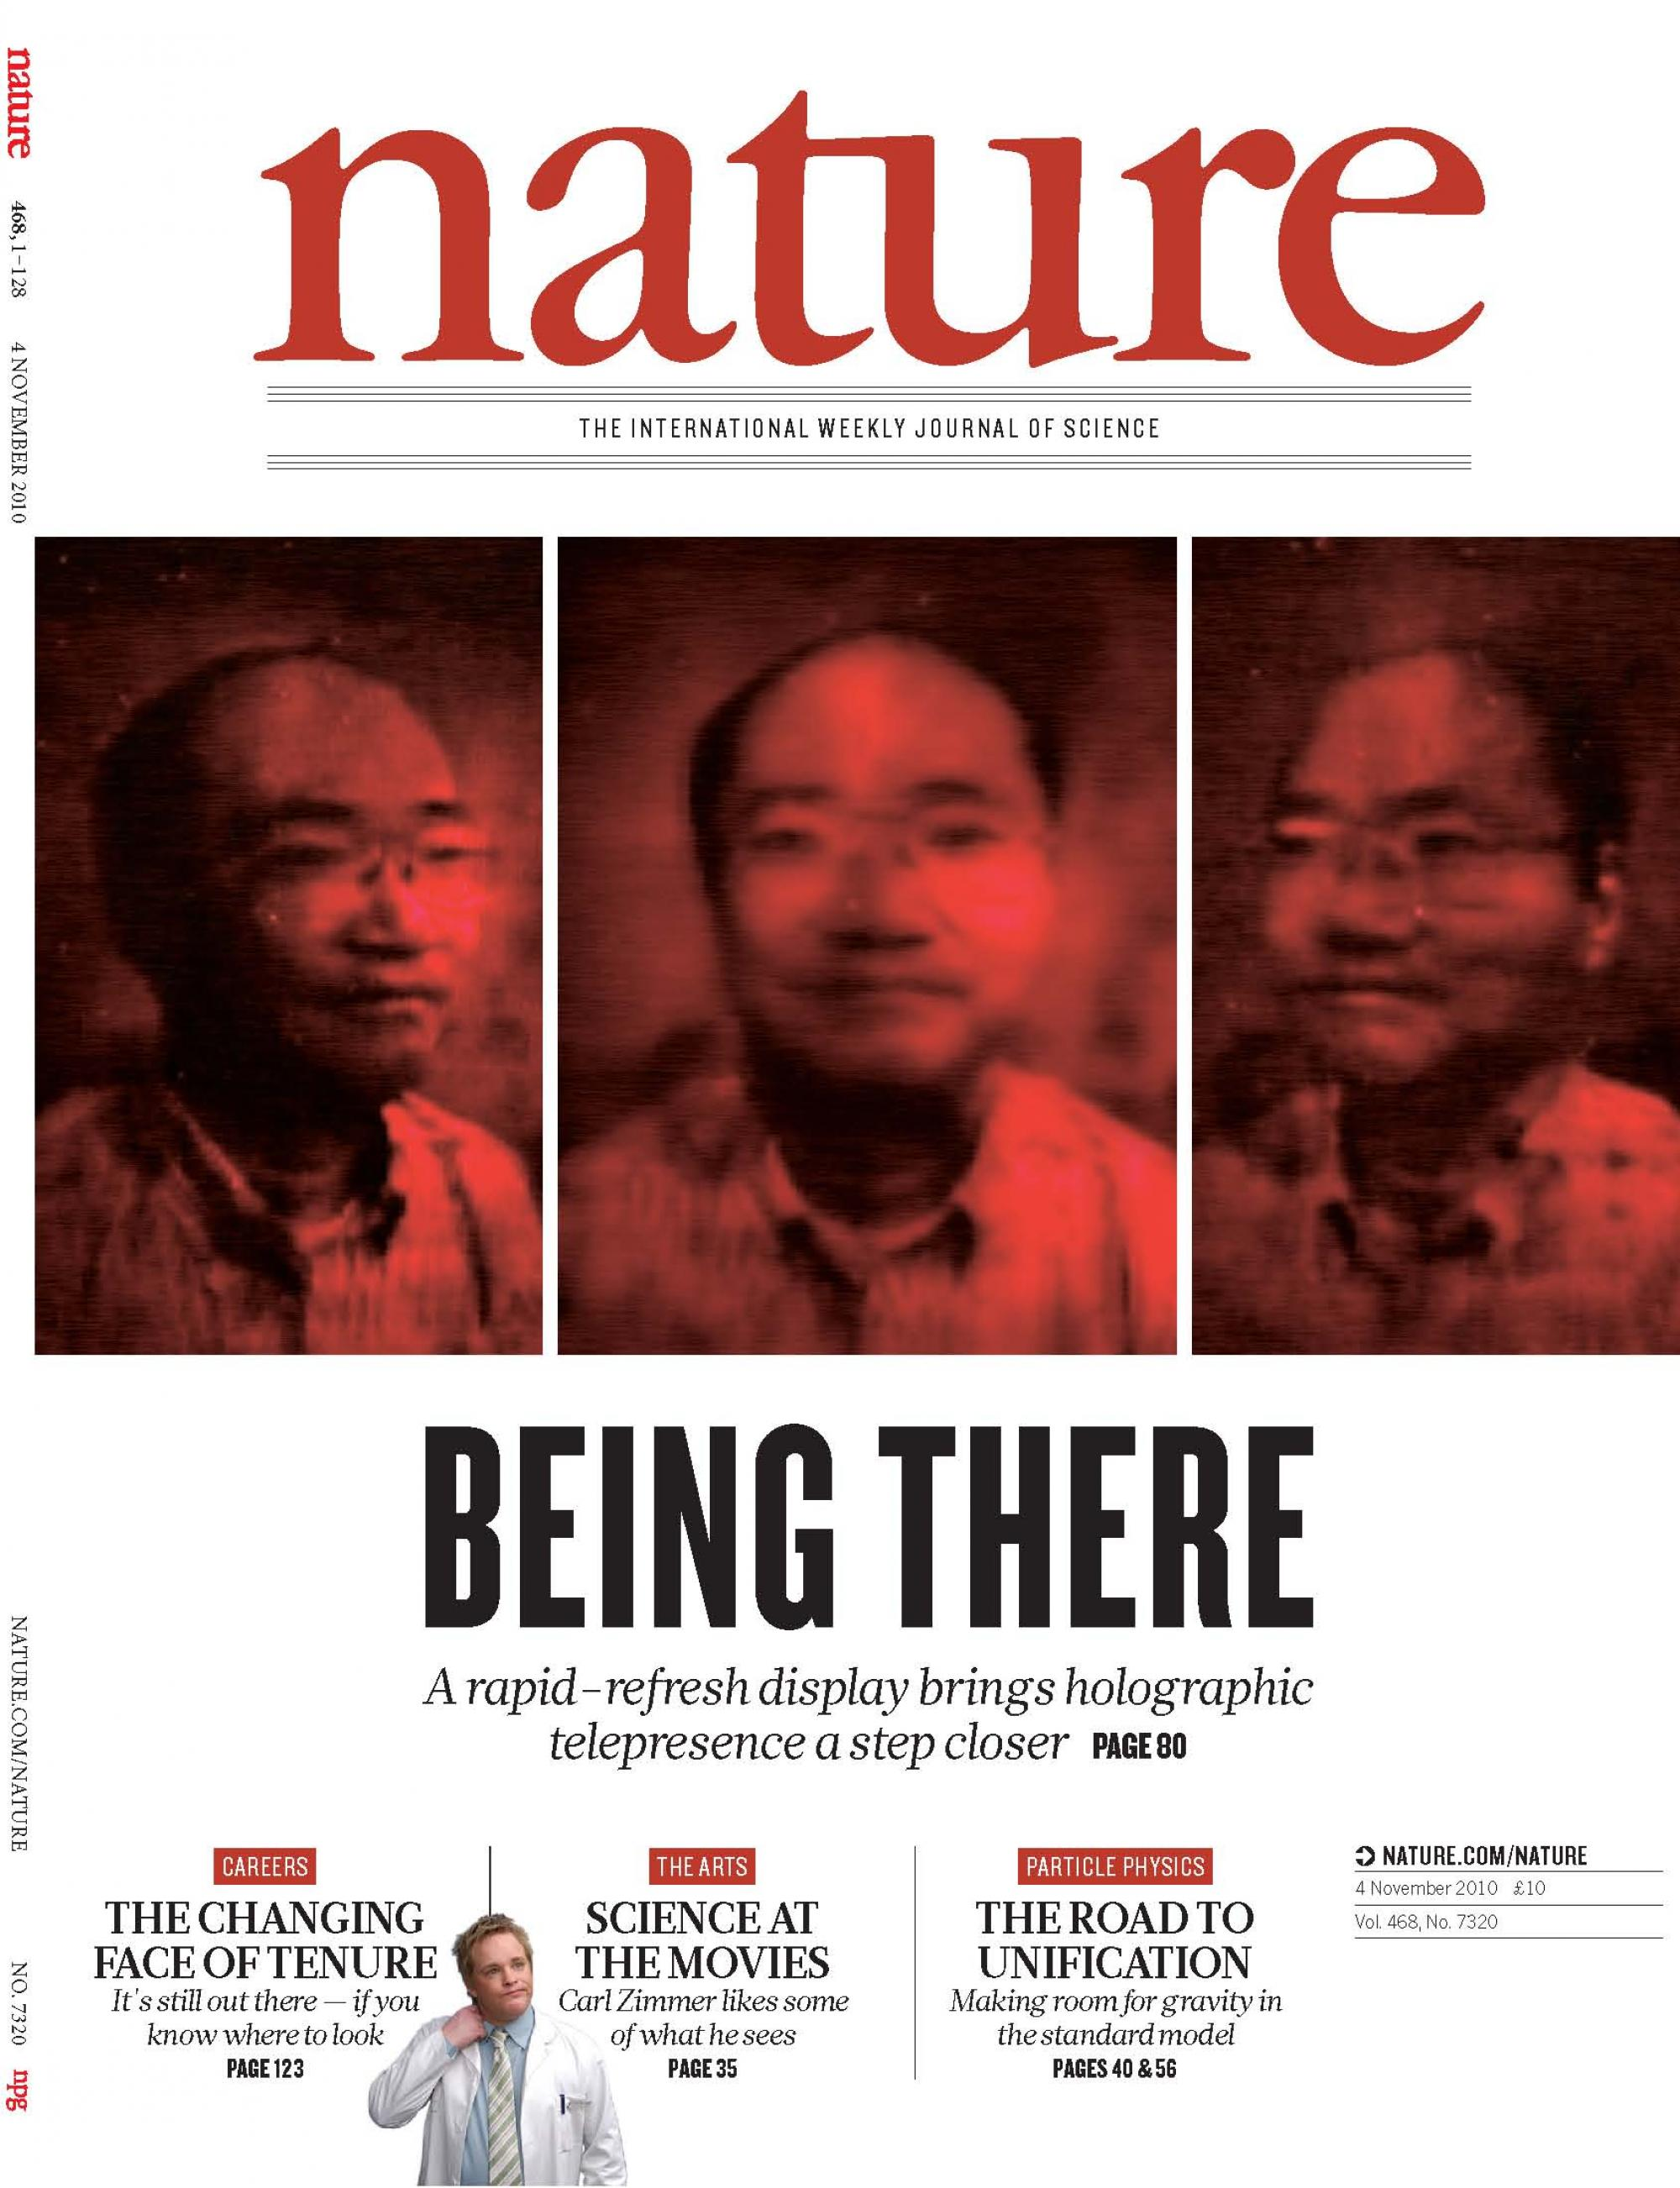 The journal Nature featuring the UA holographic presence report on the cover. Parallax, or the ability to view the image from different perspectives, is one of the hallmarks of the new technology.